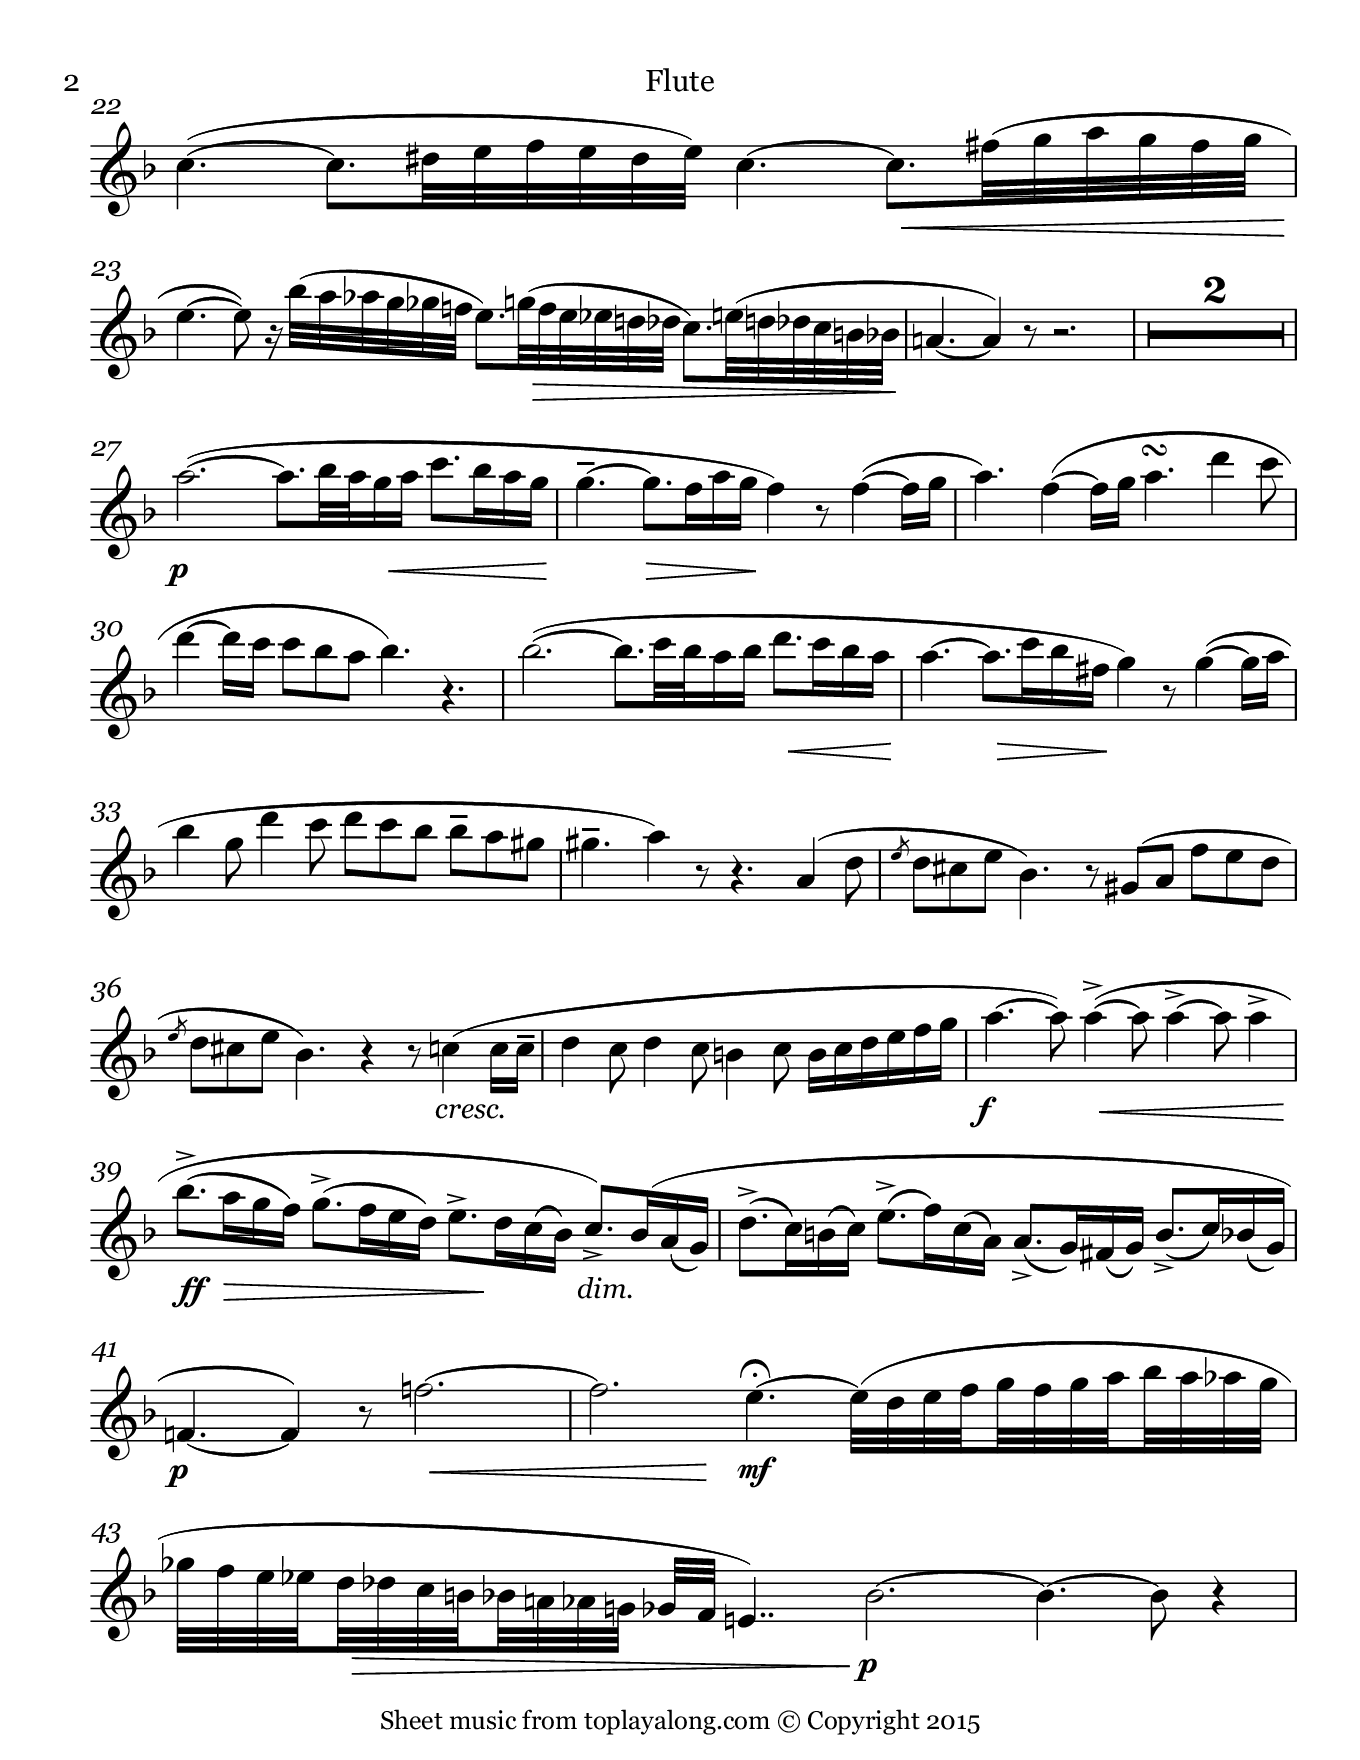 Casta Diva from Norma by Bellini. Sheet music for Flute, page 2.